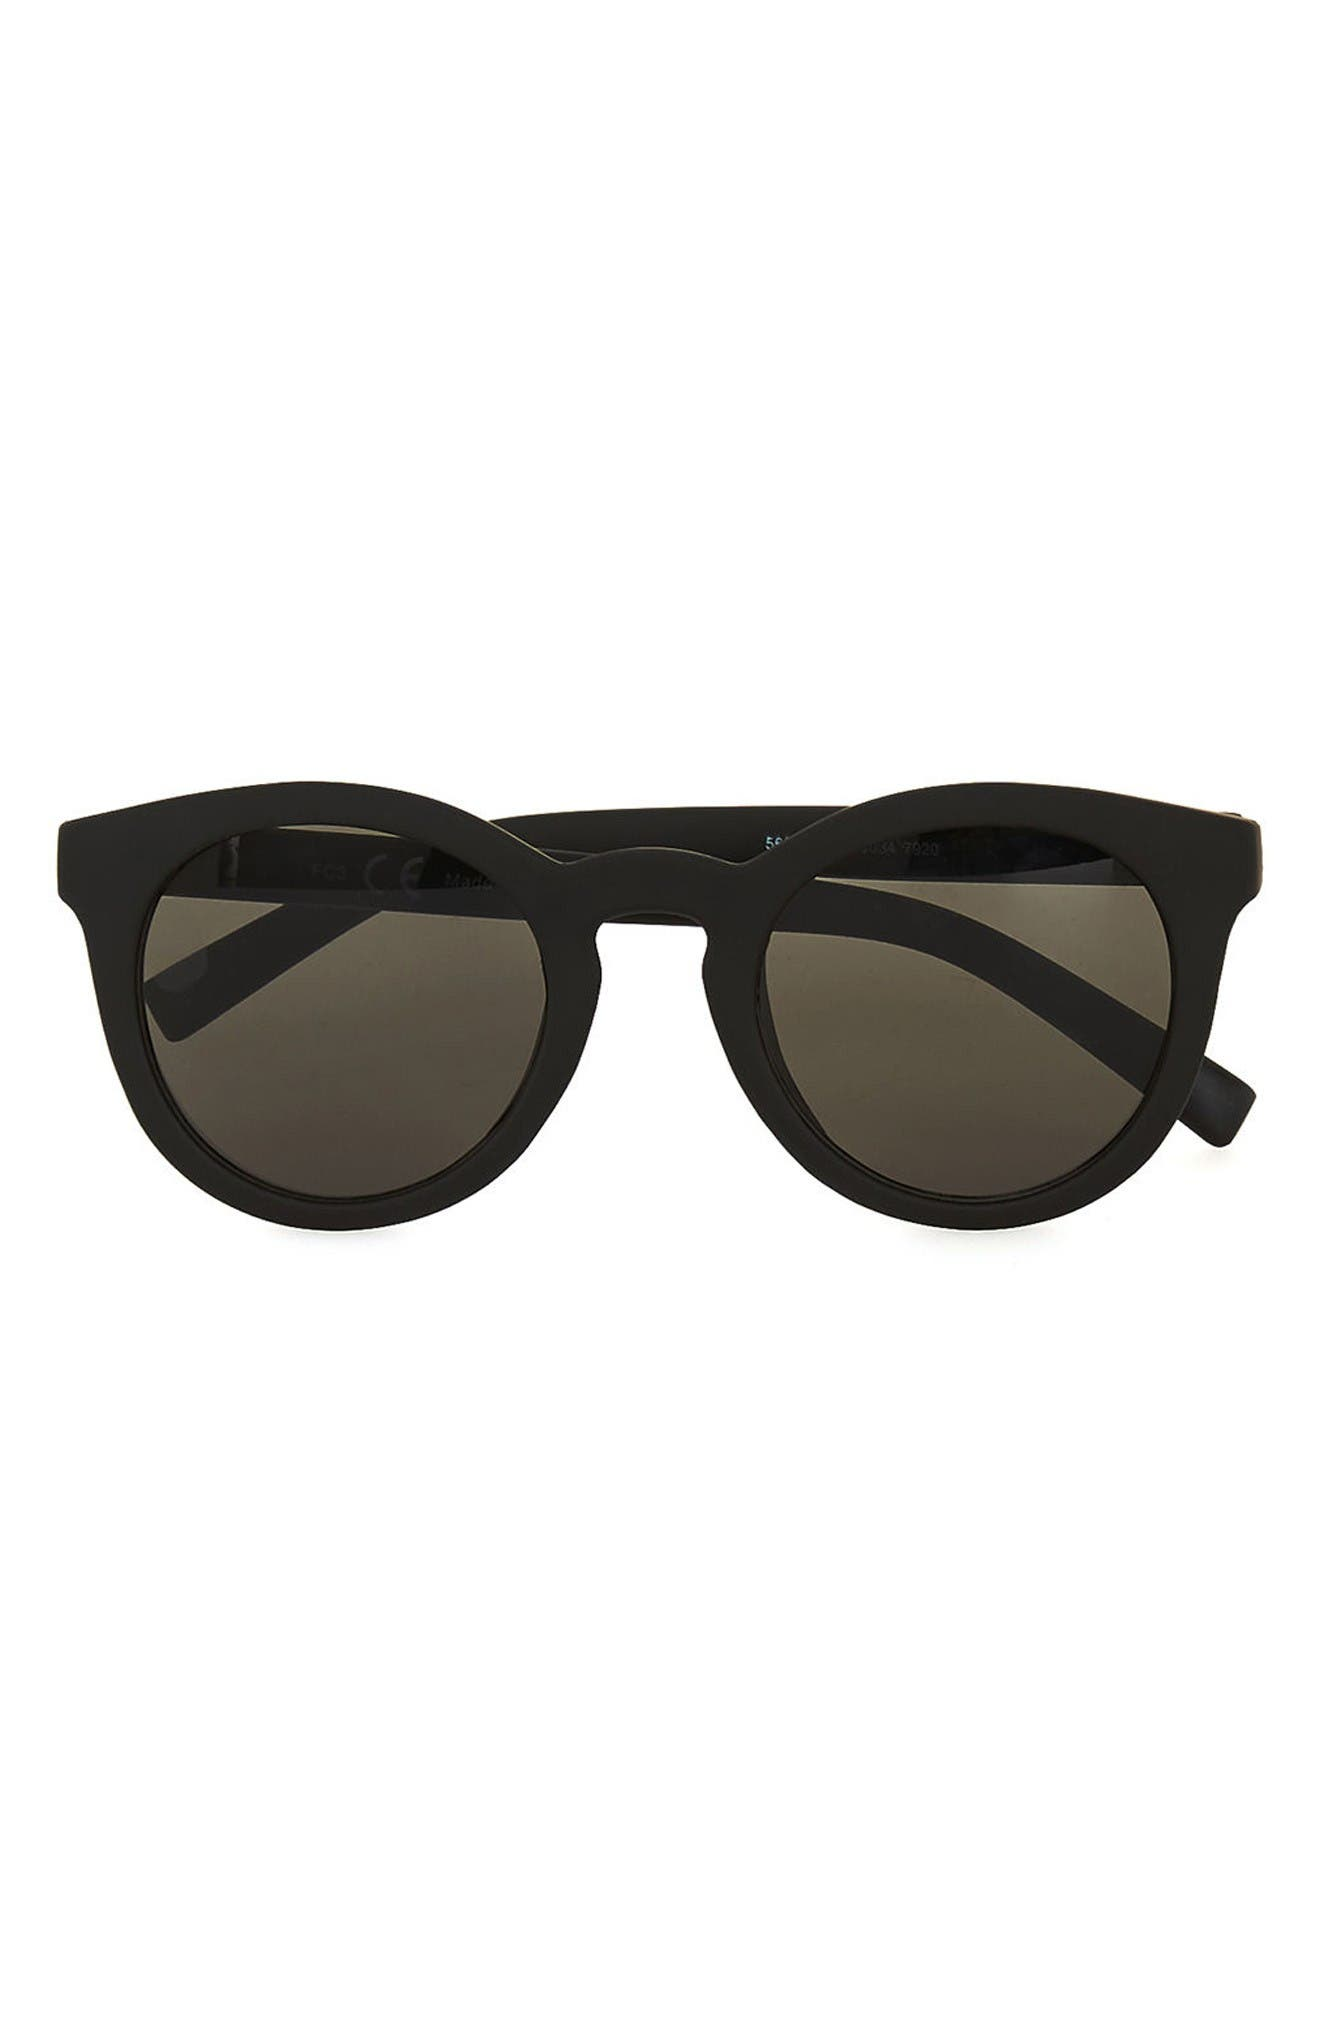 Topman 46mm Rubberized Round Sunglasses